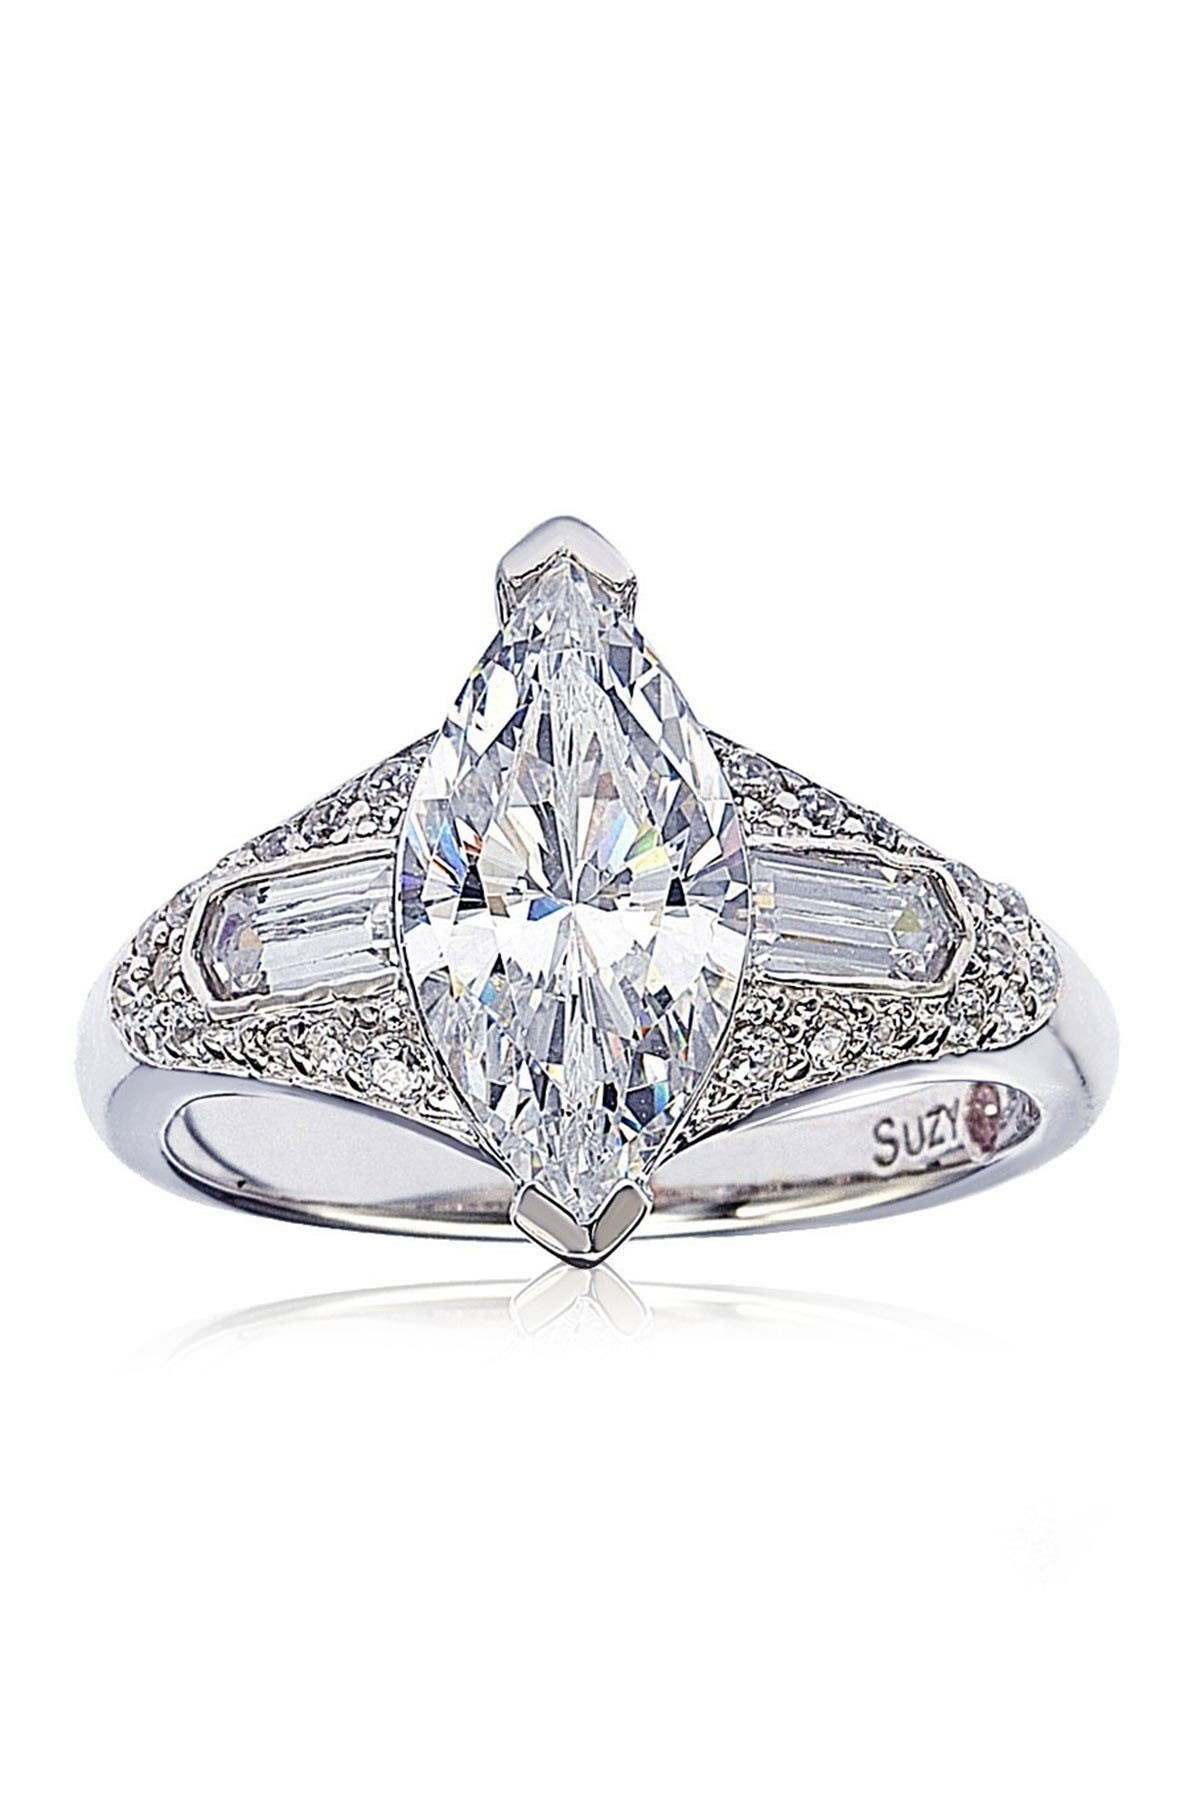 Suzy Levian Sterling Silver Marquise White CZ Ring at Nordstrom Rack